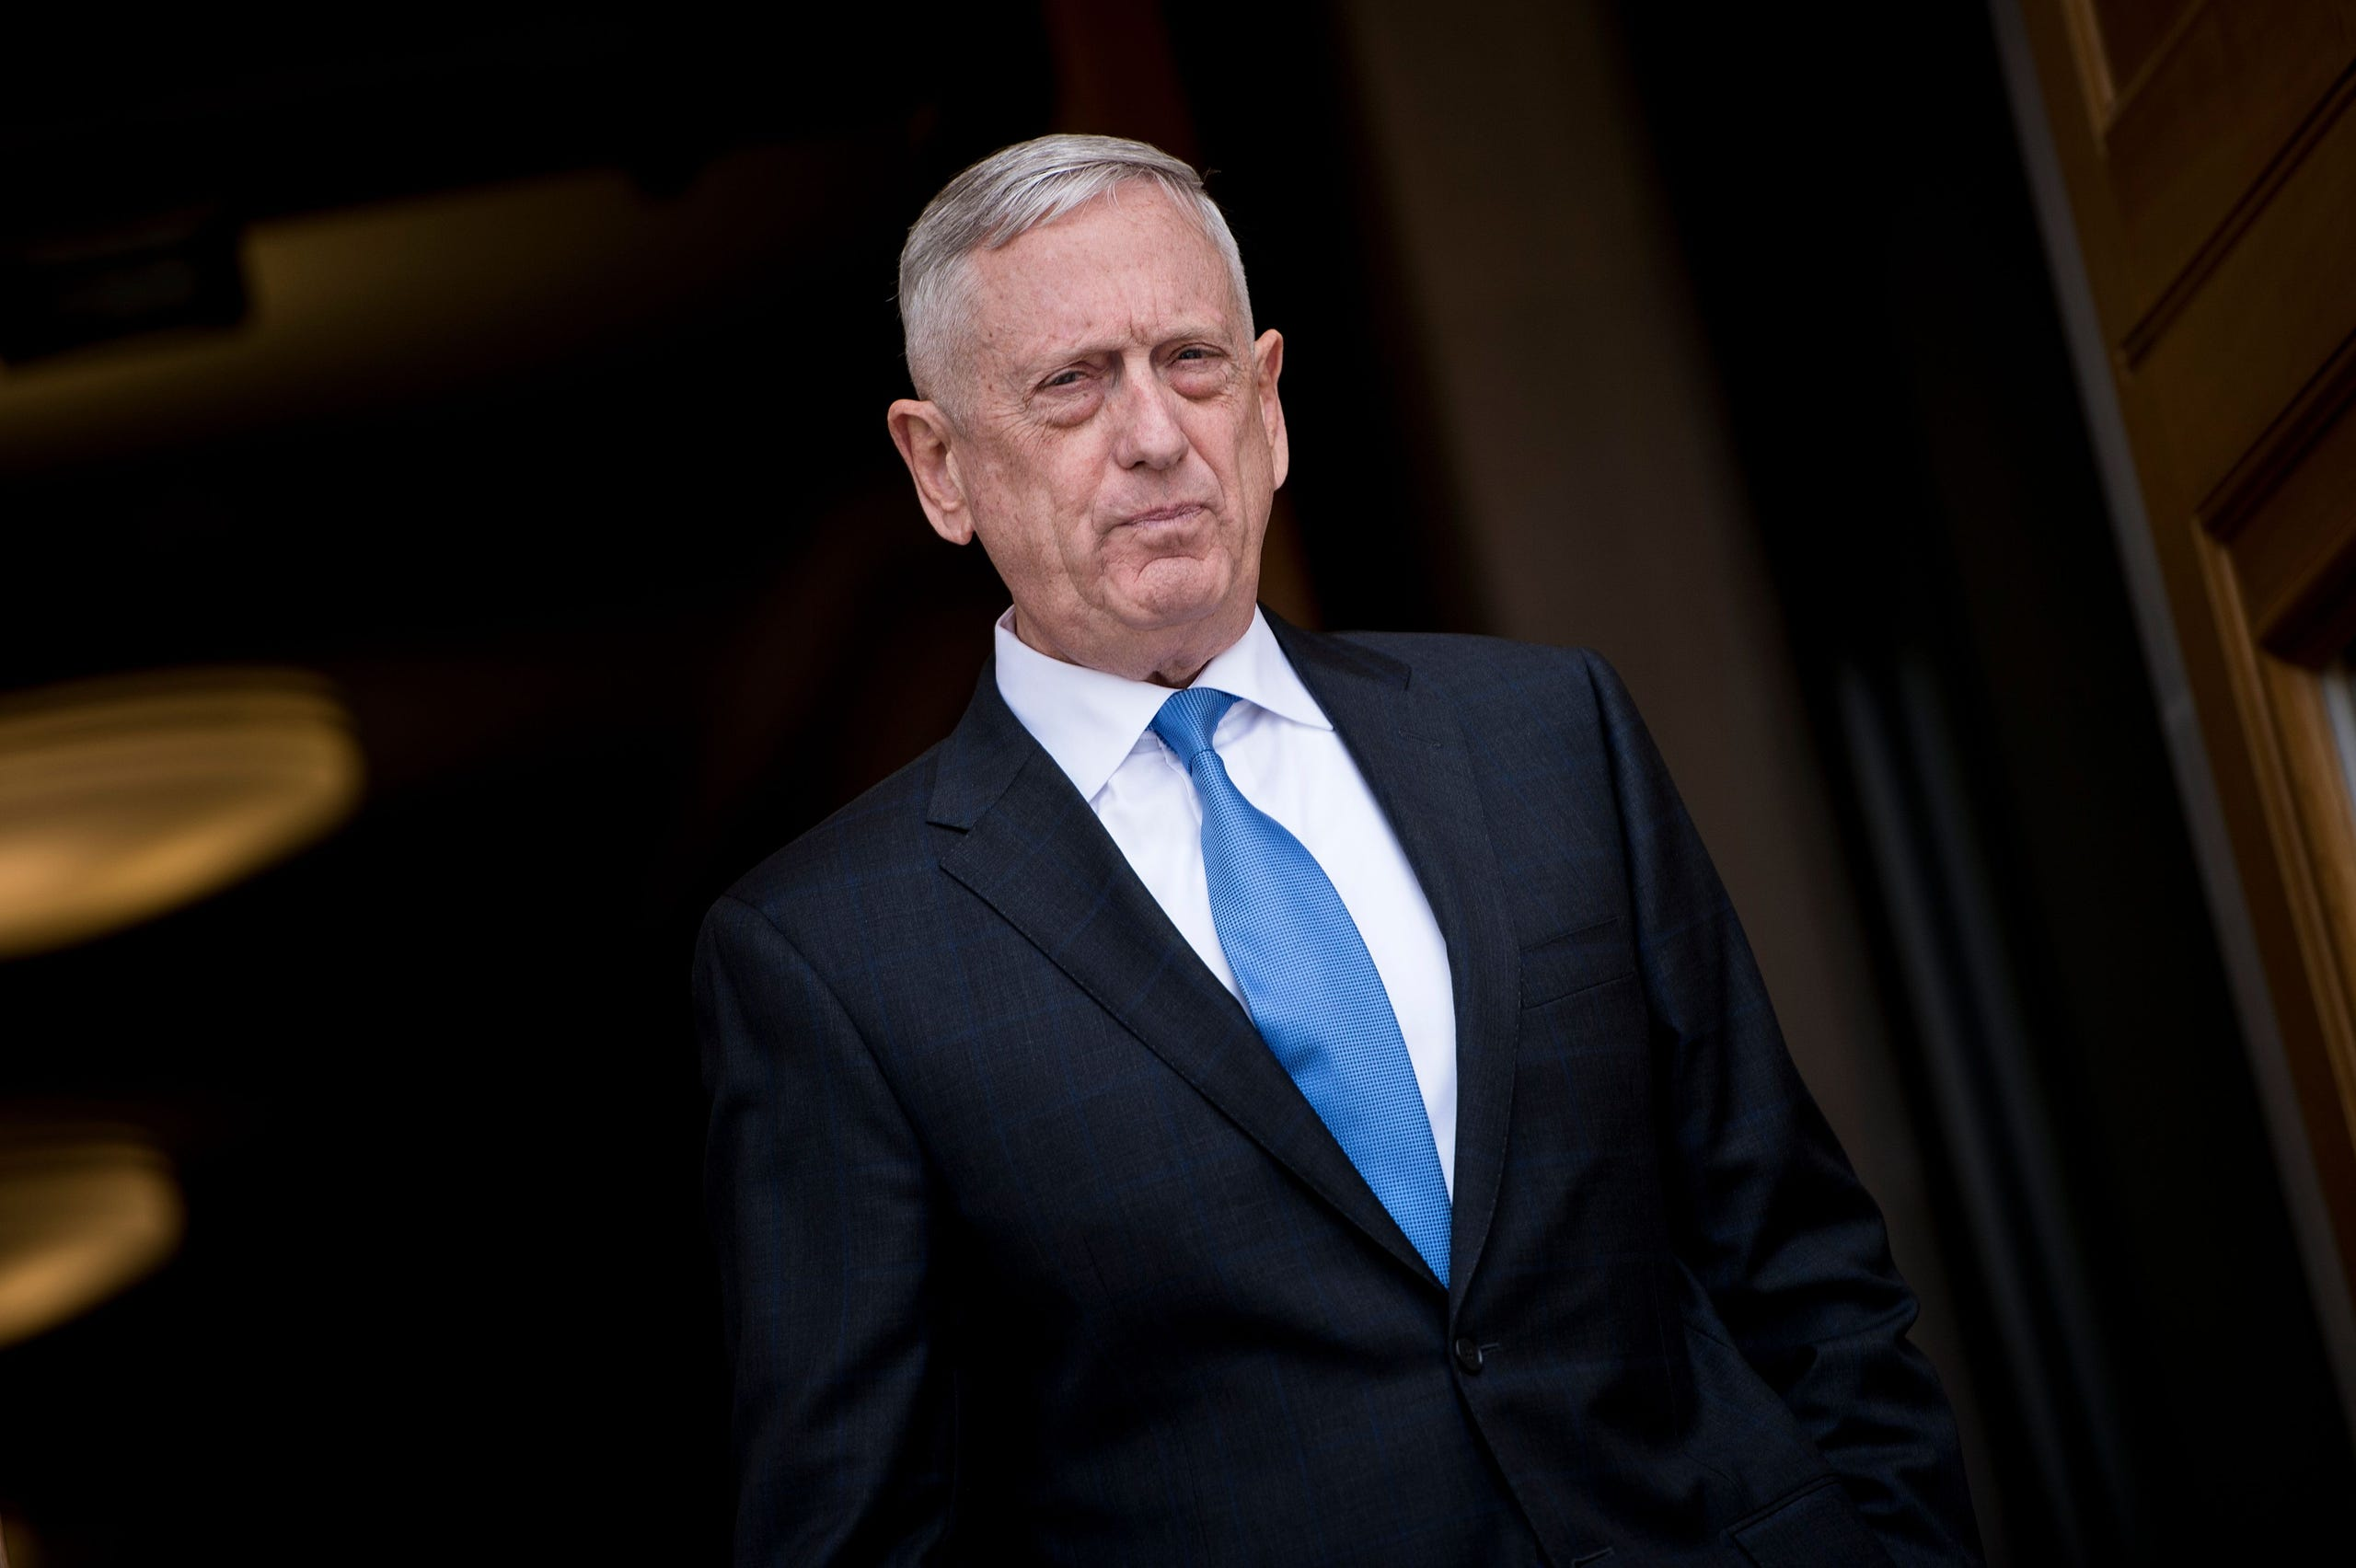 James Mattis resigned as Secretary of Defense on Dec. 20, 2018 in response to President Trump's decision to withdraw troops from Syria.